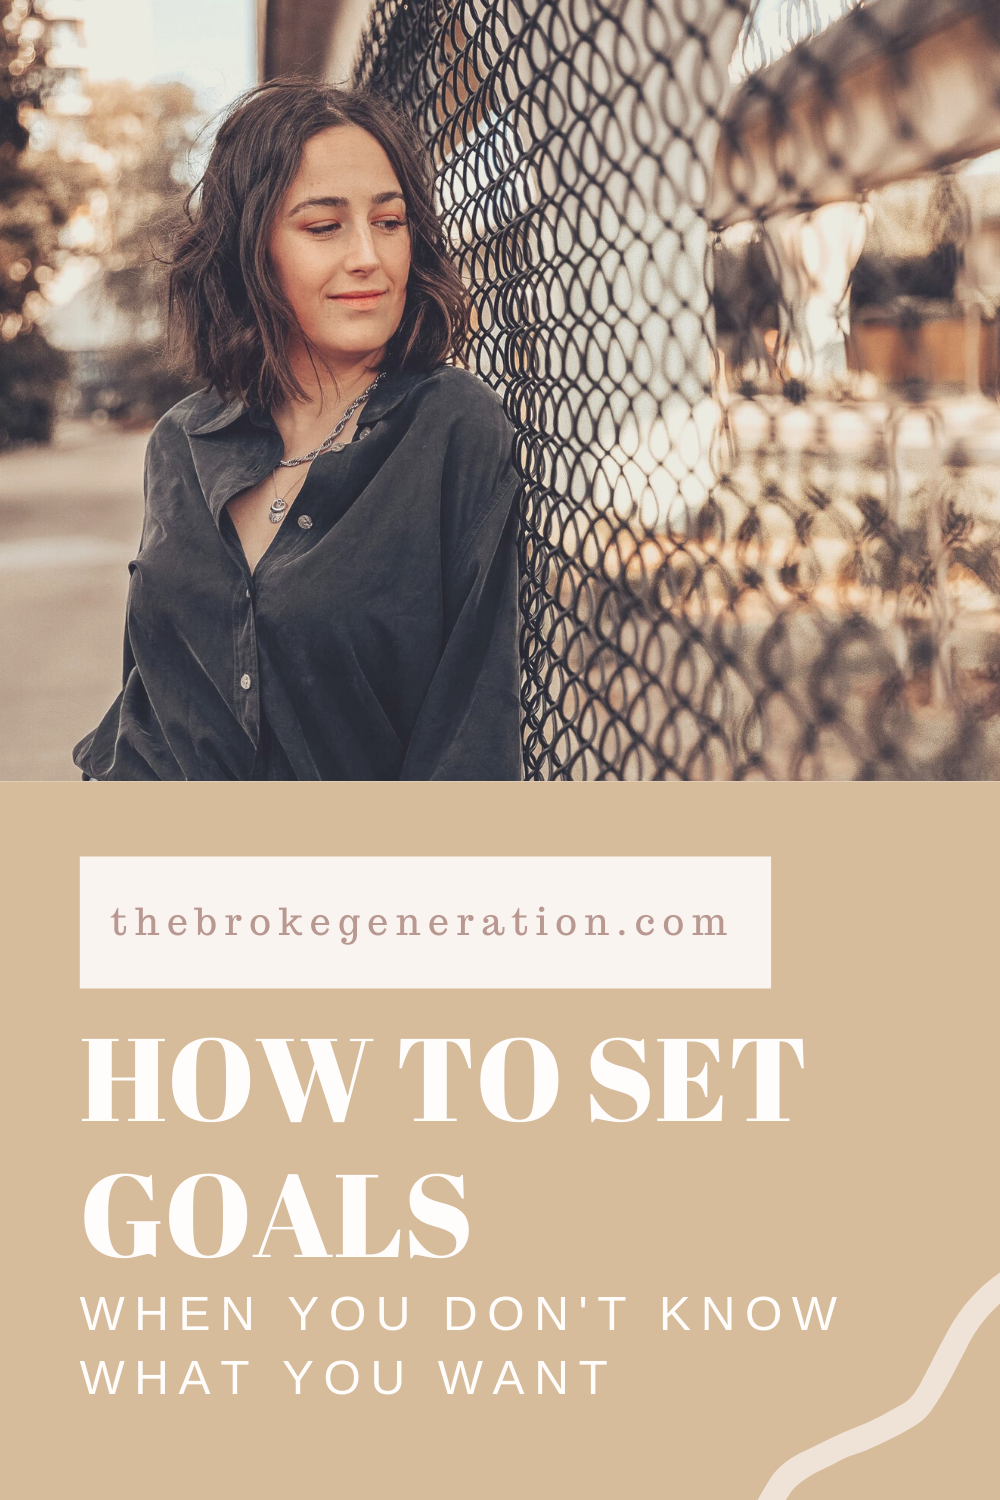 How to set goals when you don't know what you want